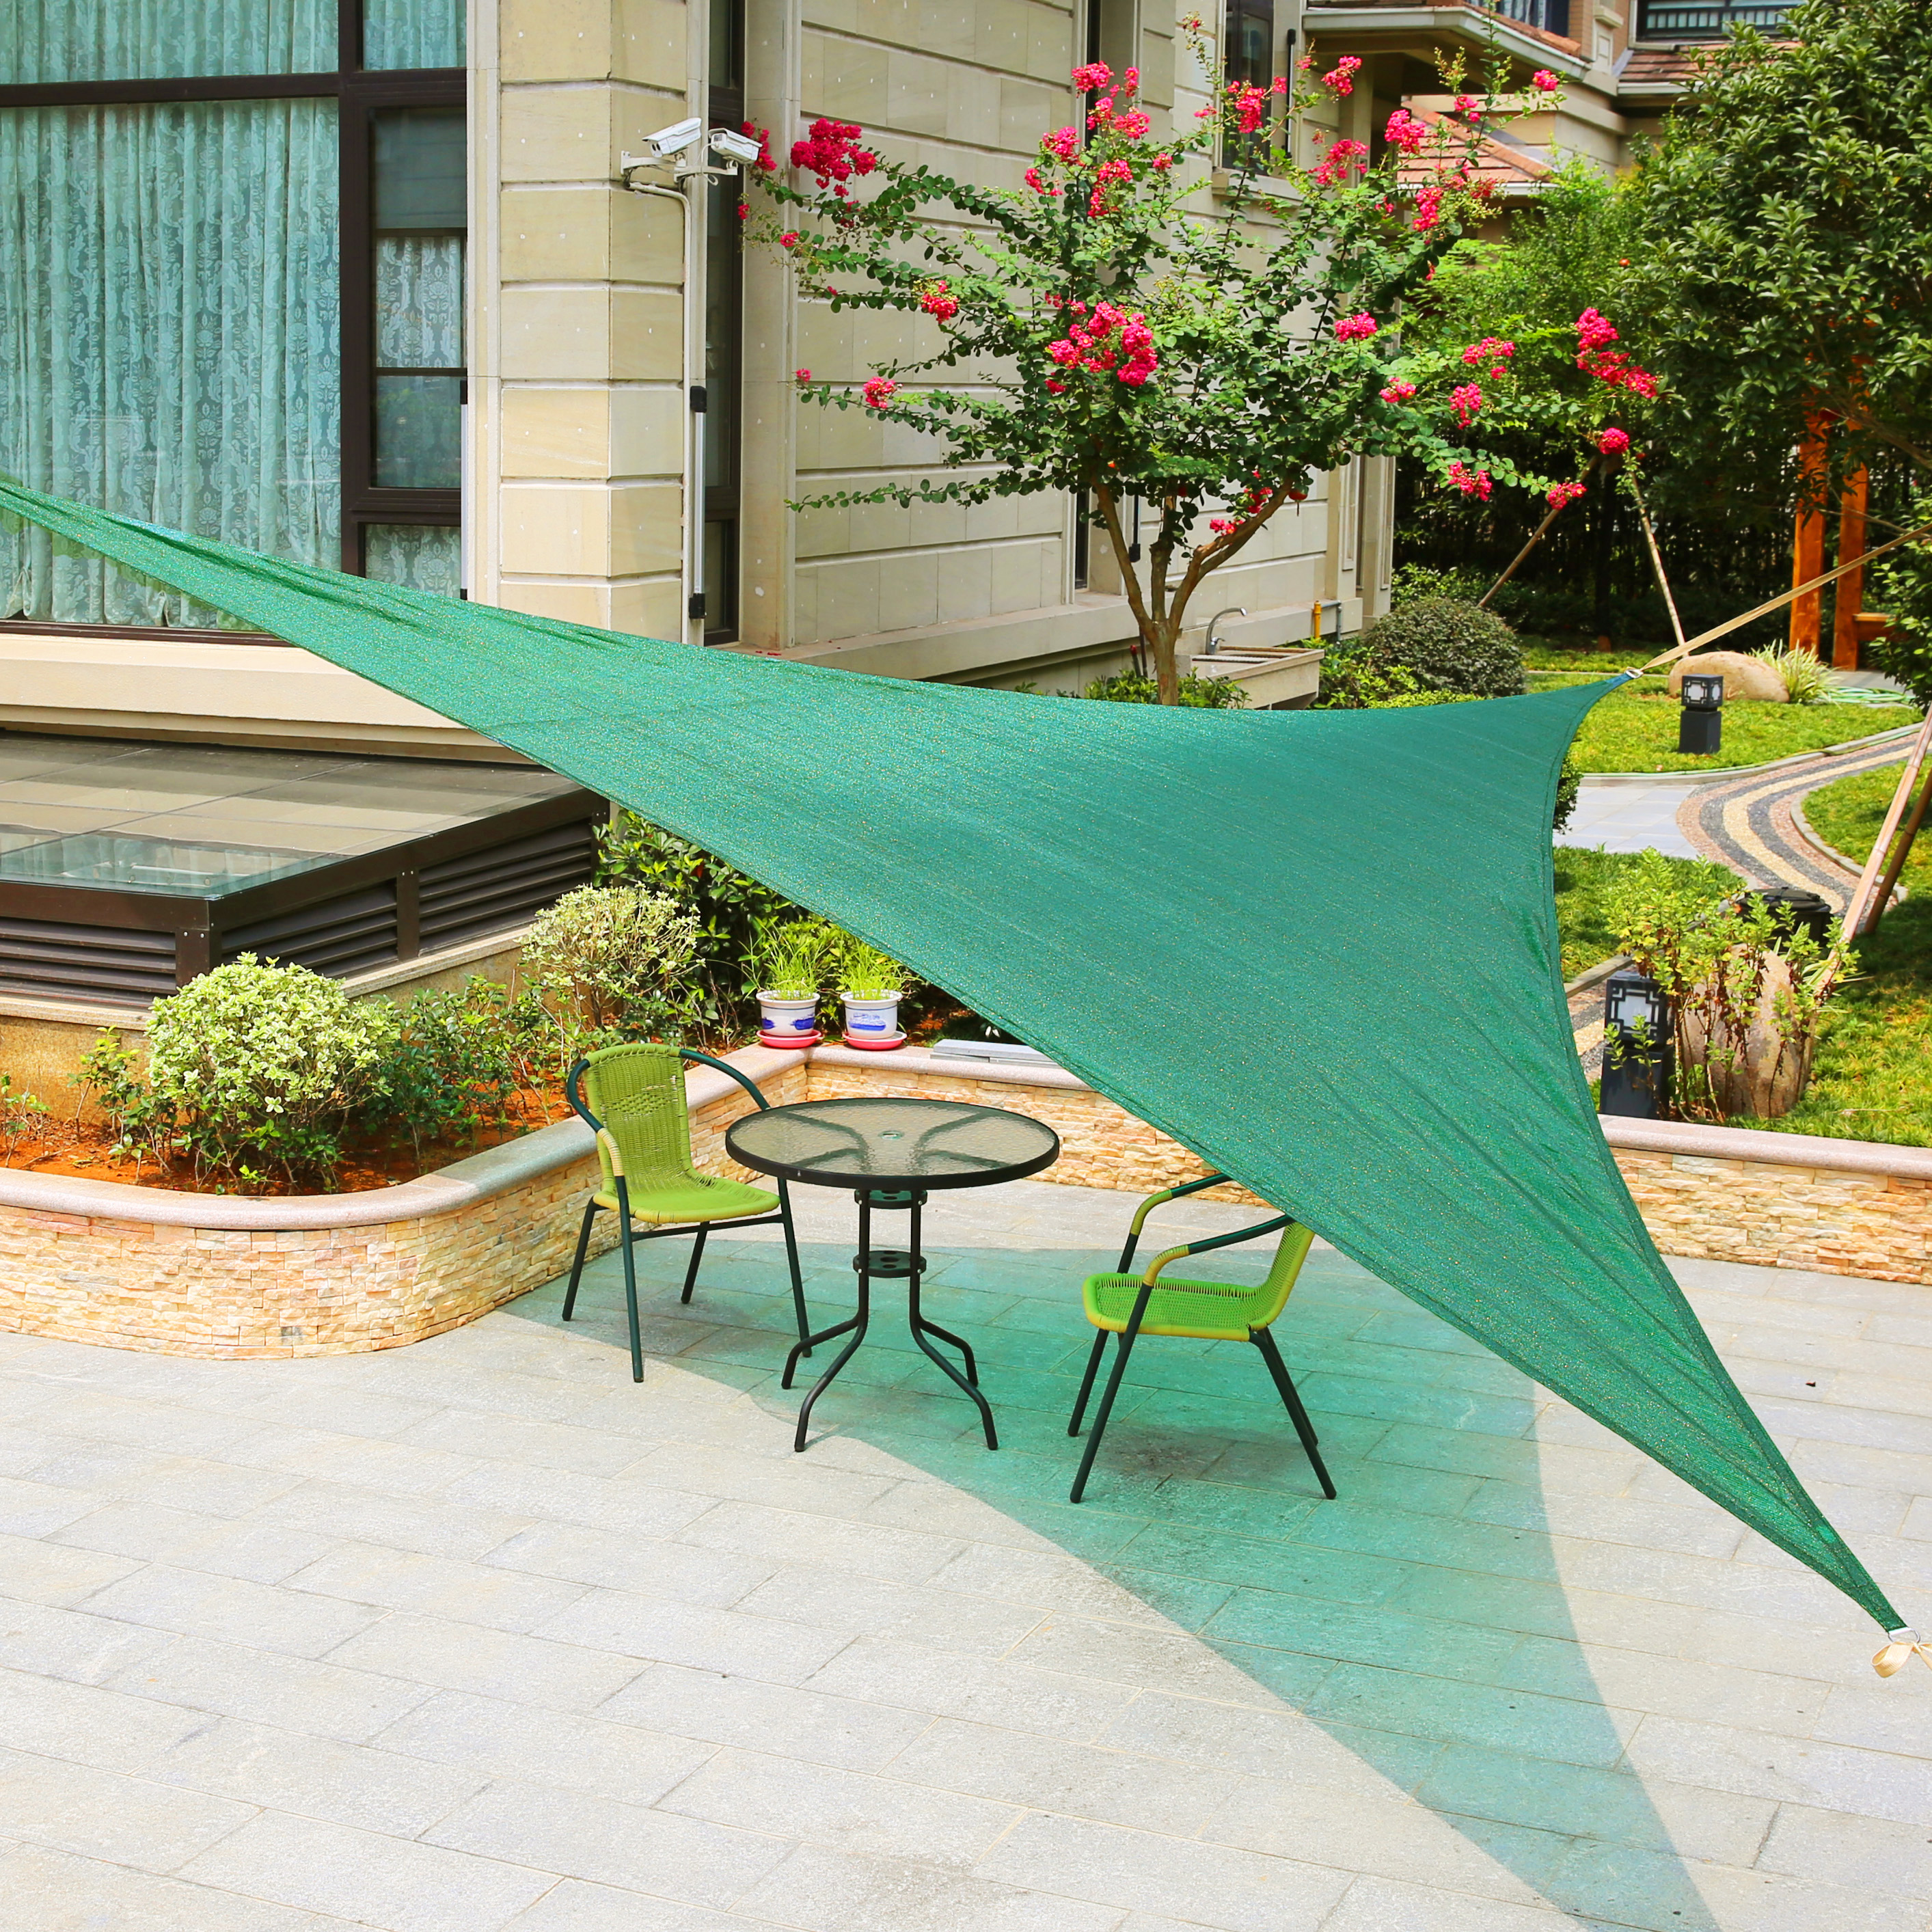 LyShade-16-039-5-034-Right-Triangle-Sun- : triangle canopy outdoor - memphite.com